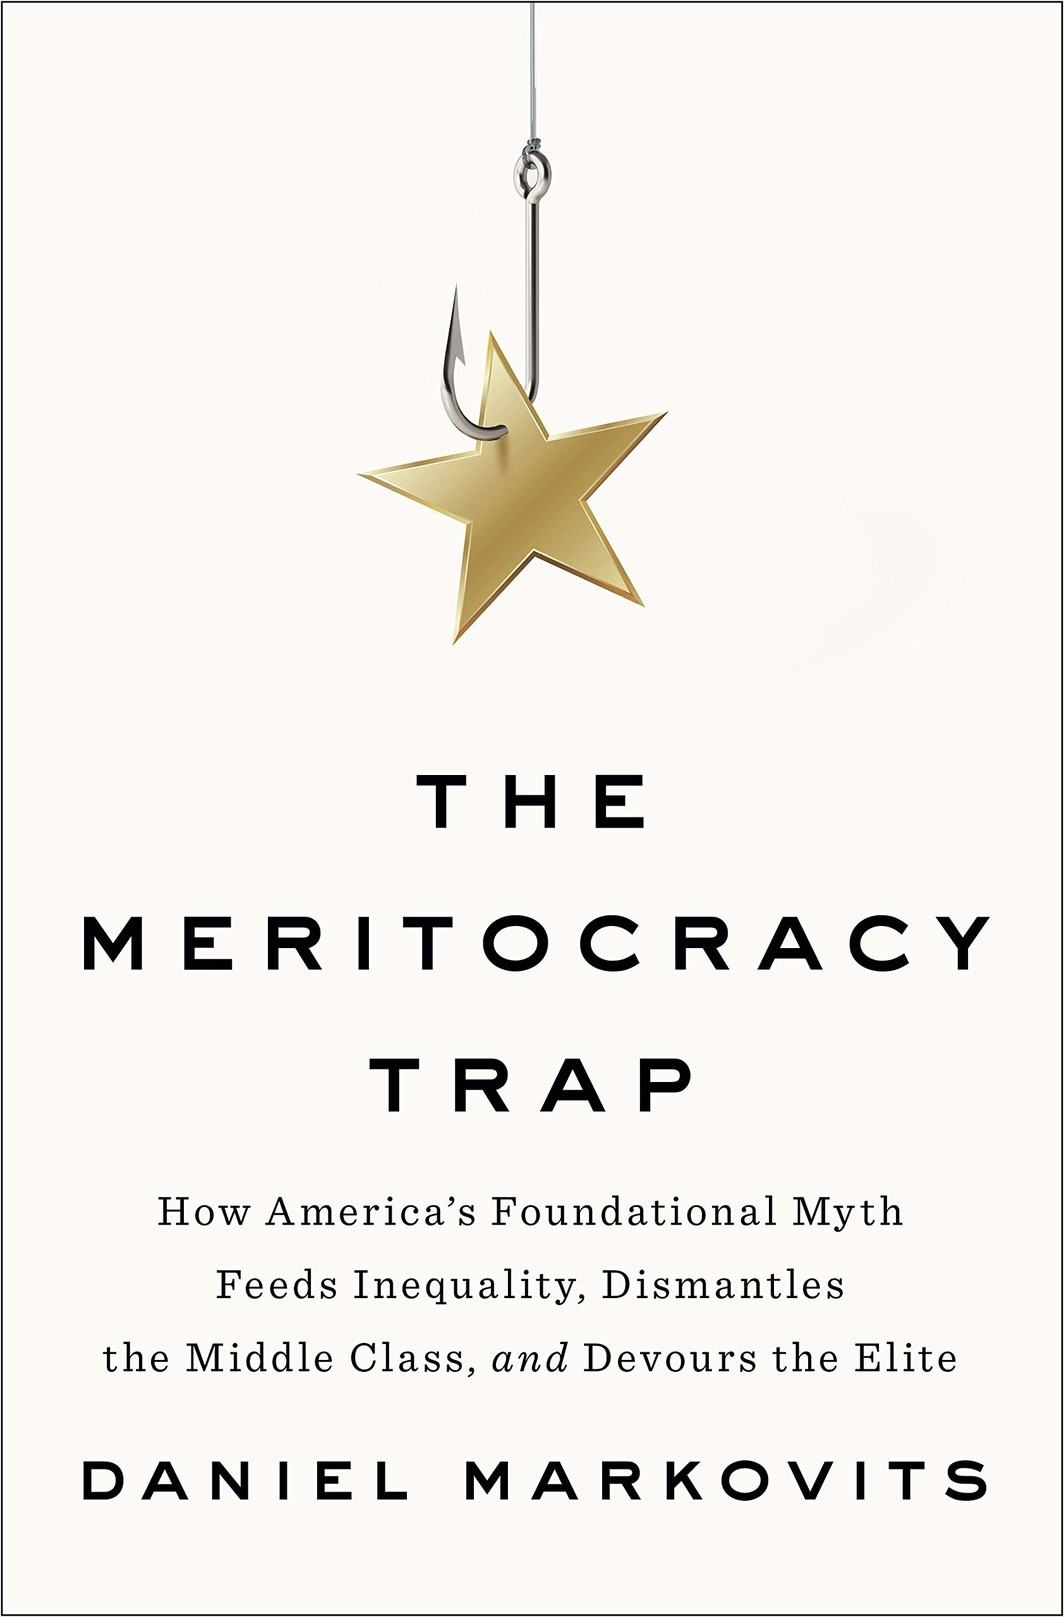 The cover of The Meritocracy Trap: How America's Foundational Myth Feeds Inequality, Dismantles the Middle Class, and Devours the Elite